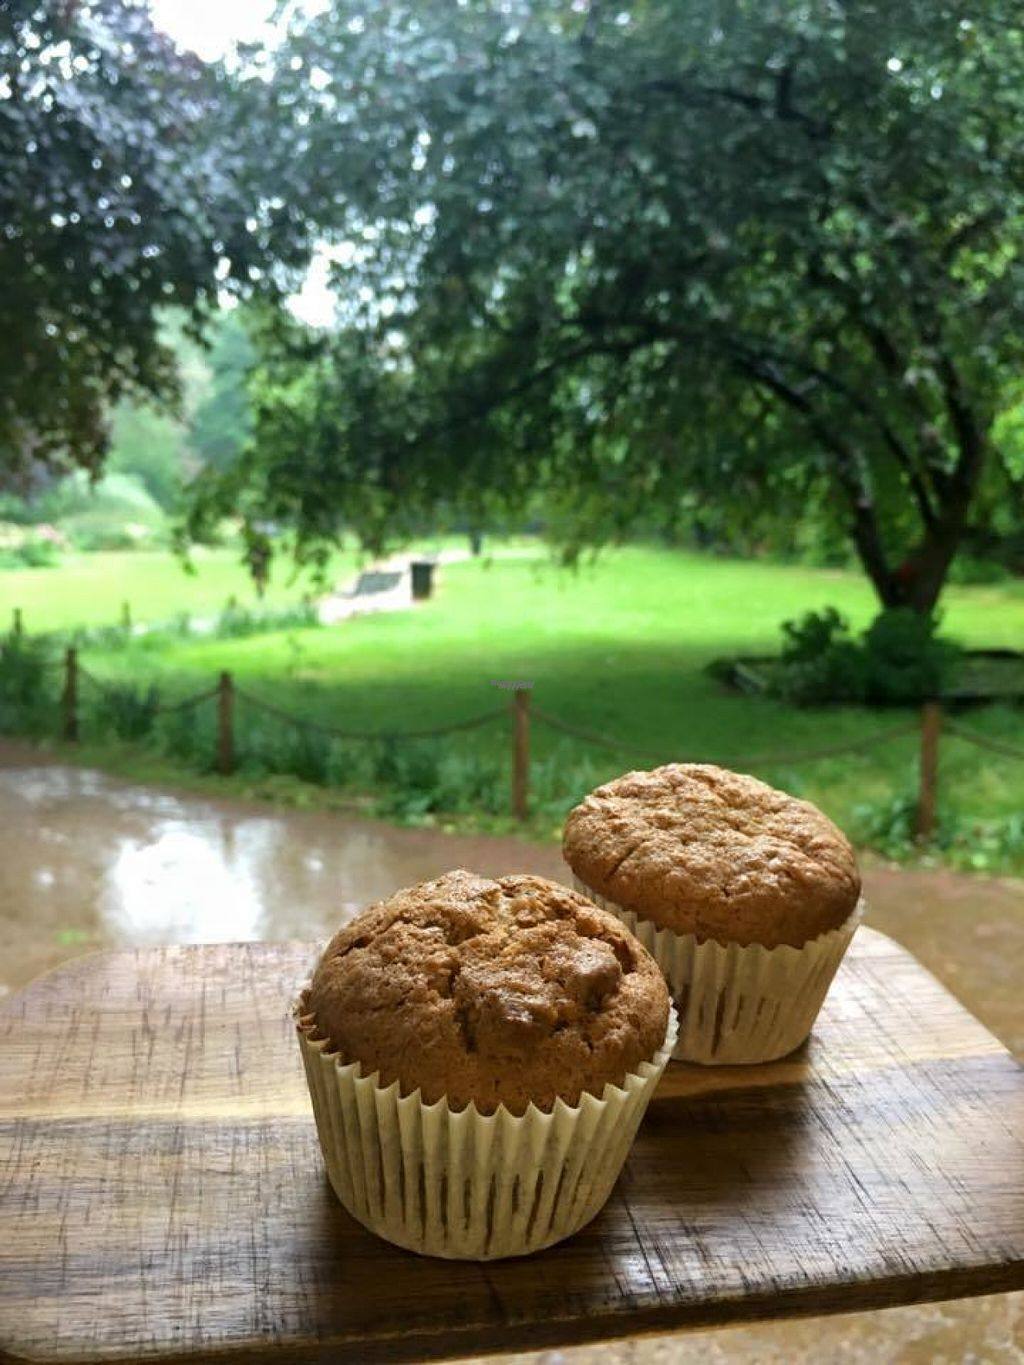 """Photo of Ginger Jules Kiosk  by <a href=""""/members/profile/Meaks"""">Meaks</a> <br/>Vegan Carrot Cake Muffins <br/> August 3, 2016  - <a href='/contact/abuse/image/66198/165170'>Report</a>"""